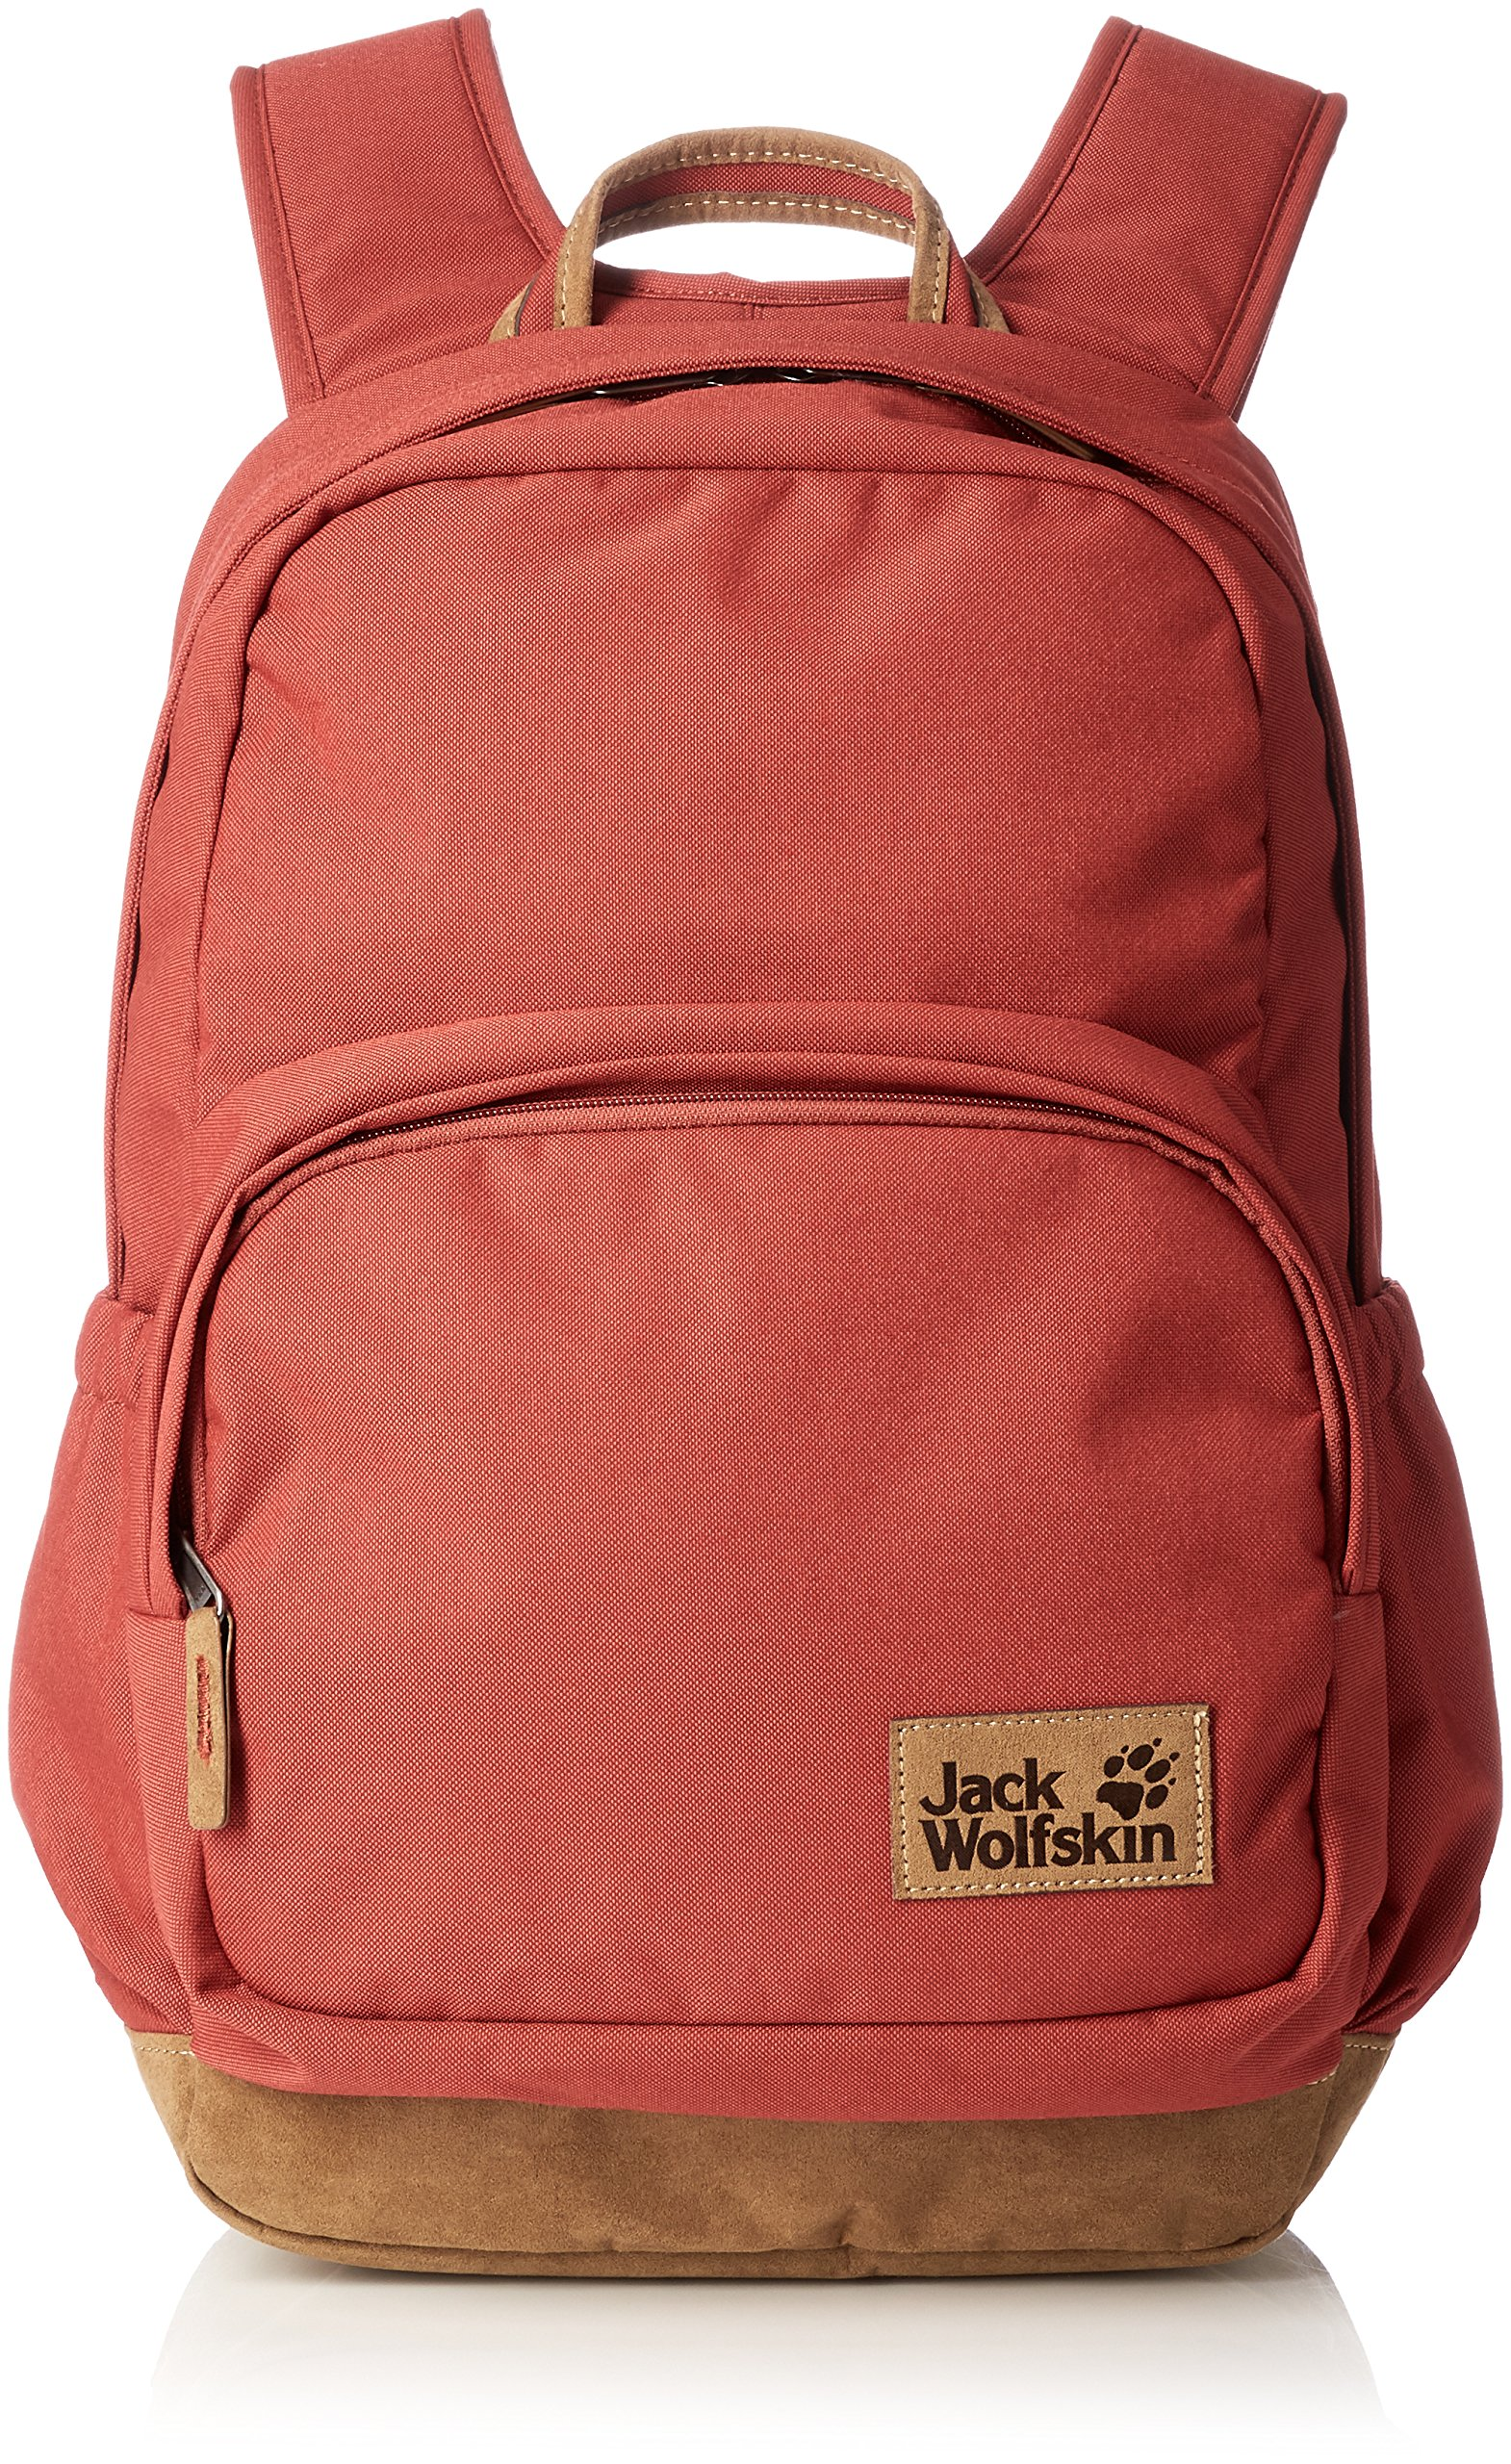 Jack Wolfskin Croxley Hiking Daypacks, Mexican Pepper, One Size